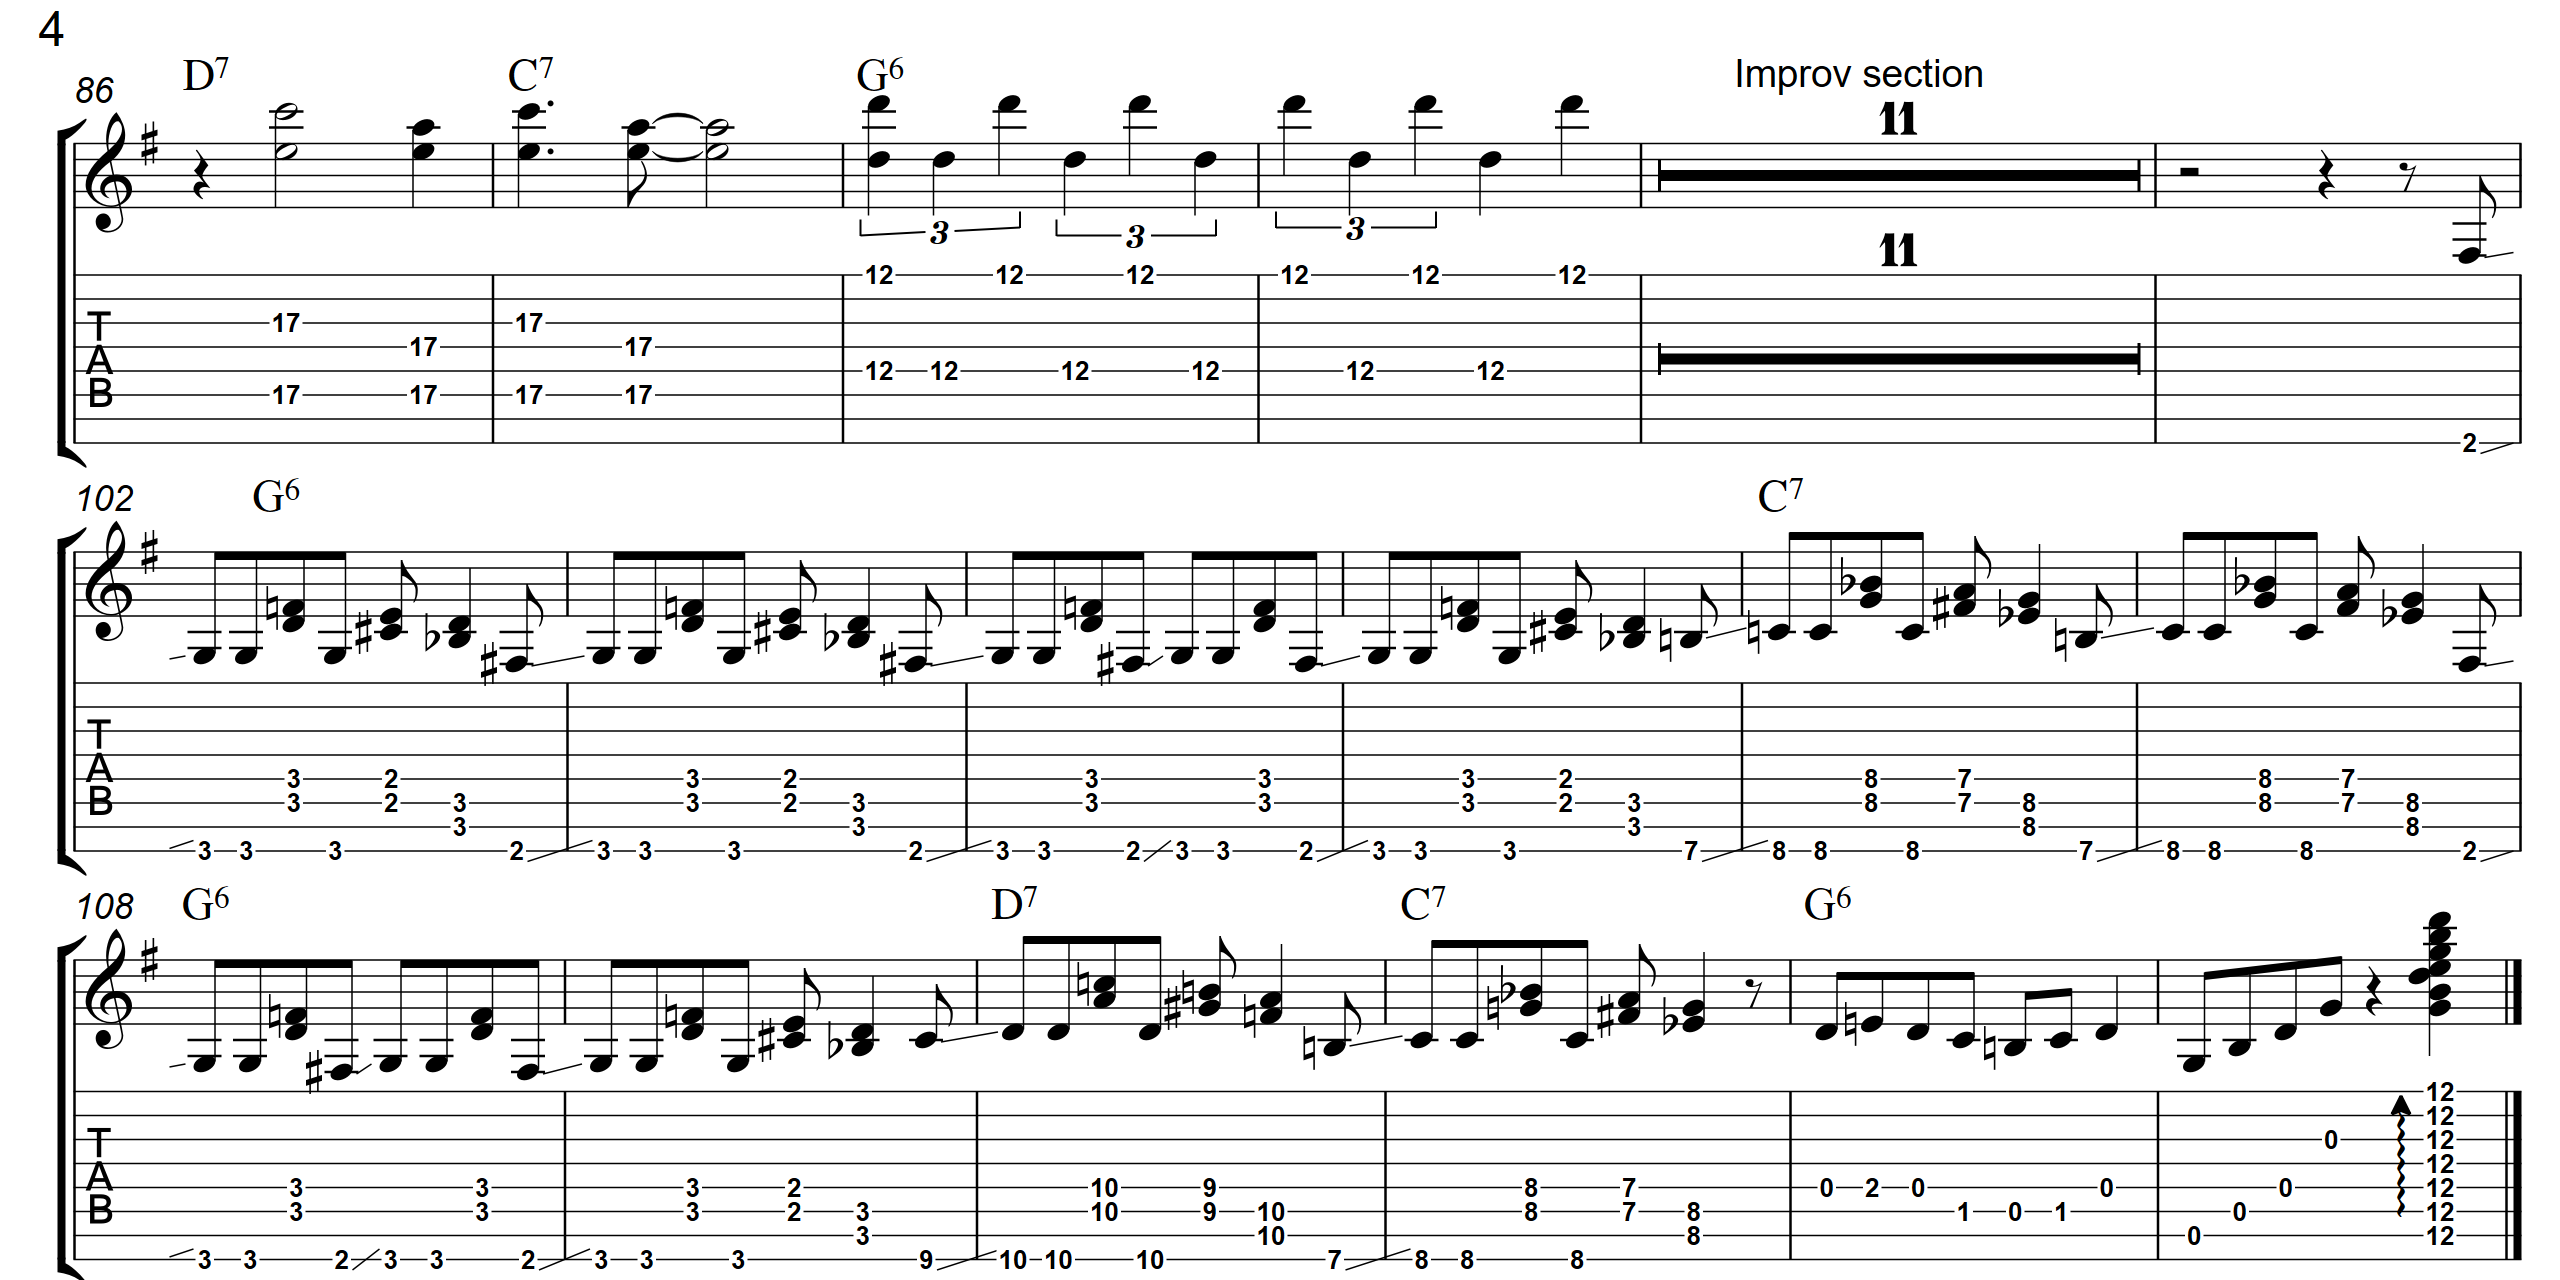 Bluegrass Boogie  TAB - Page 4 - Landscape